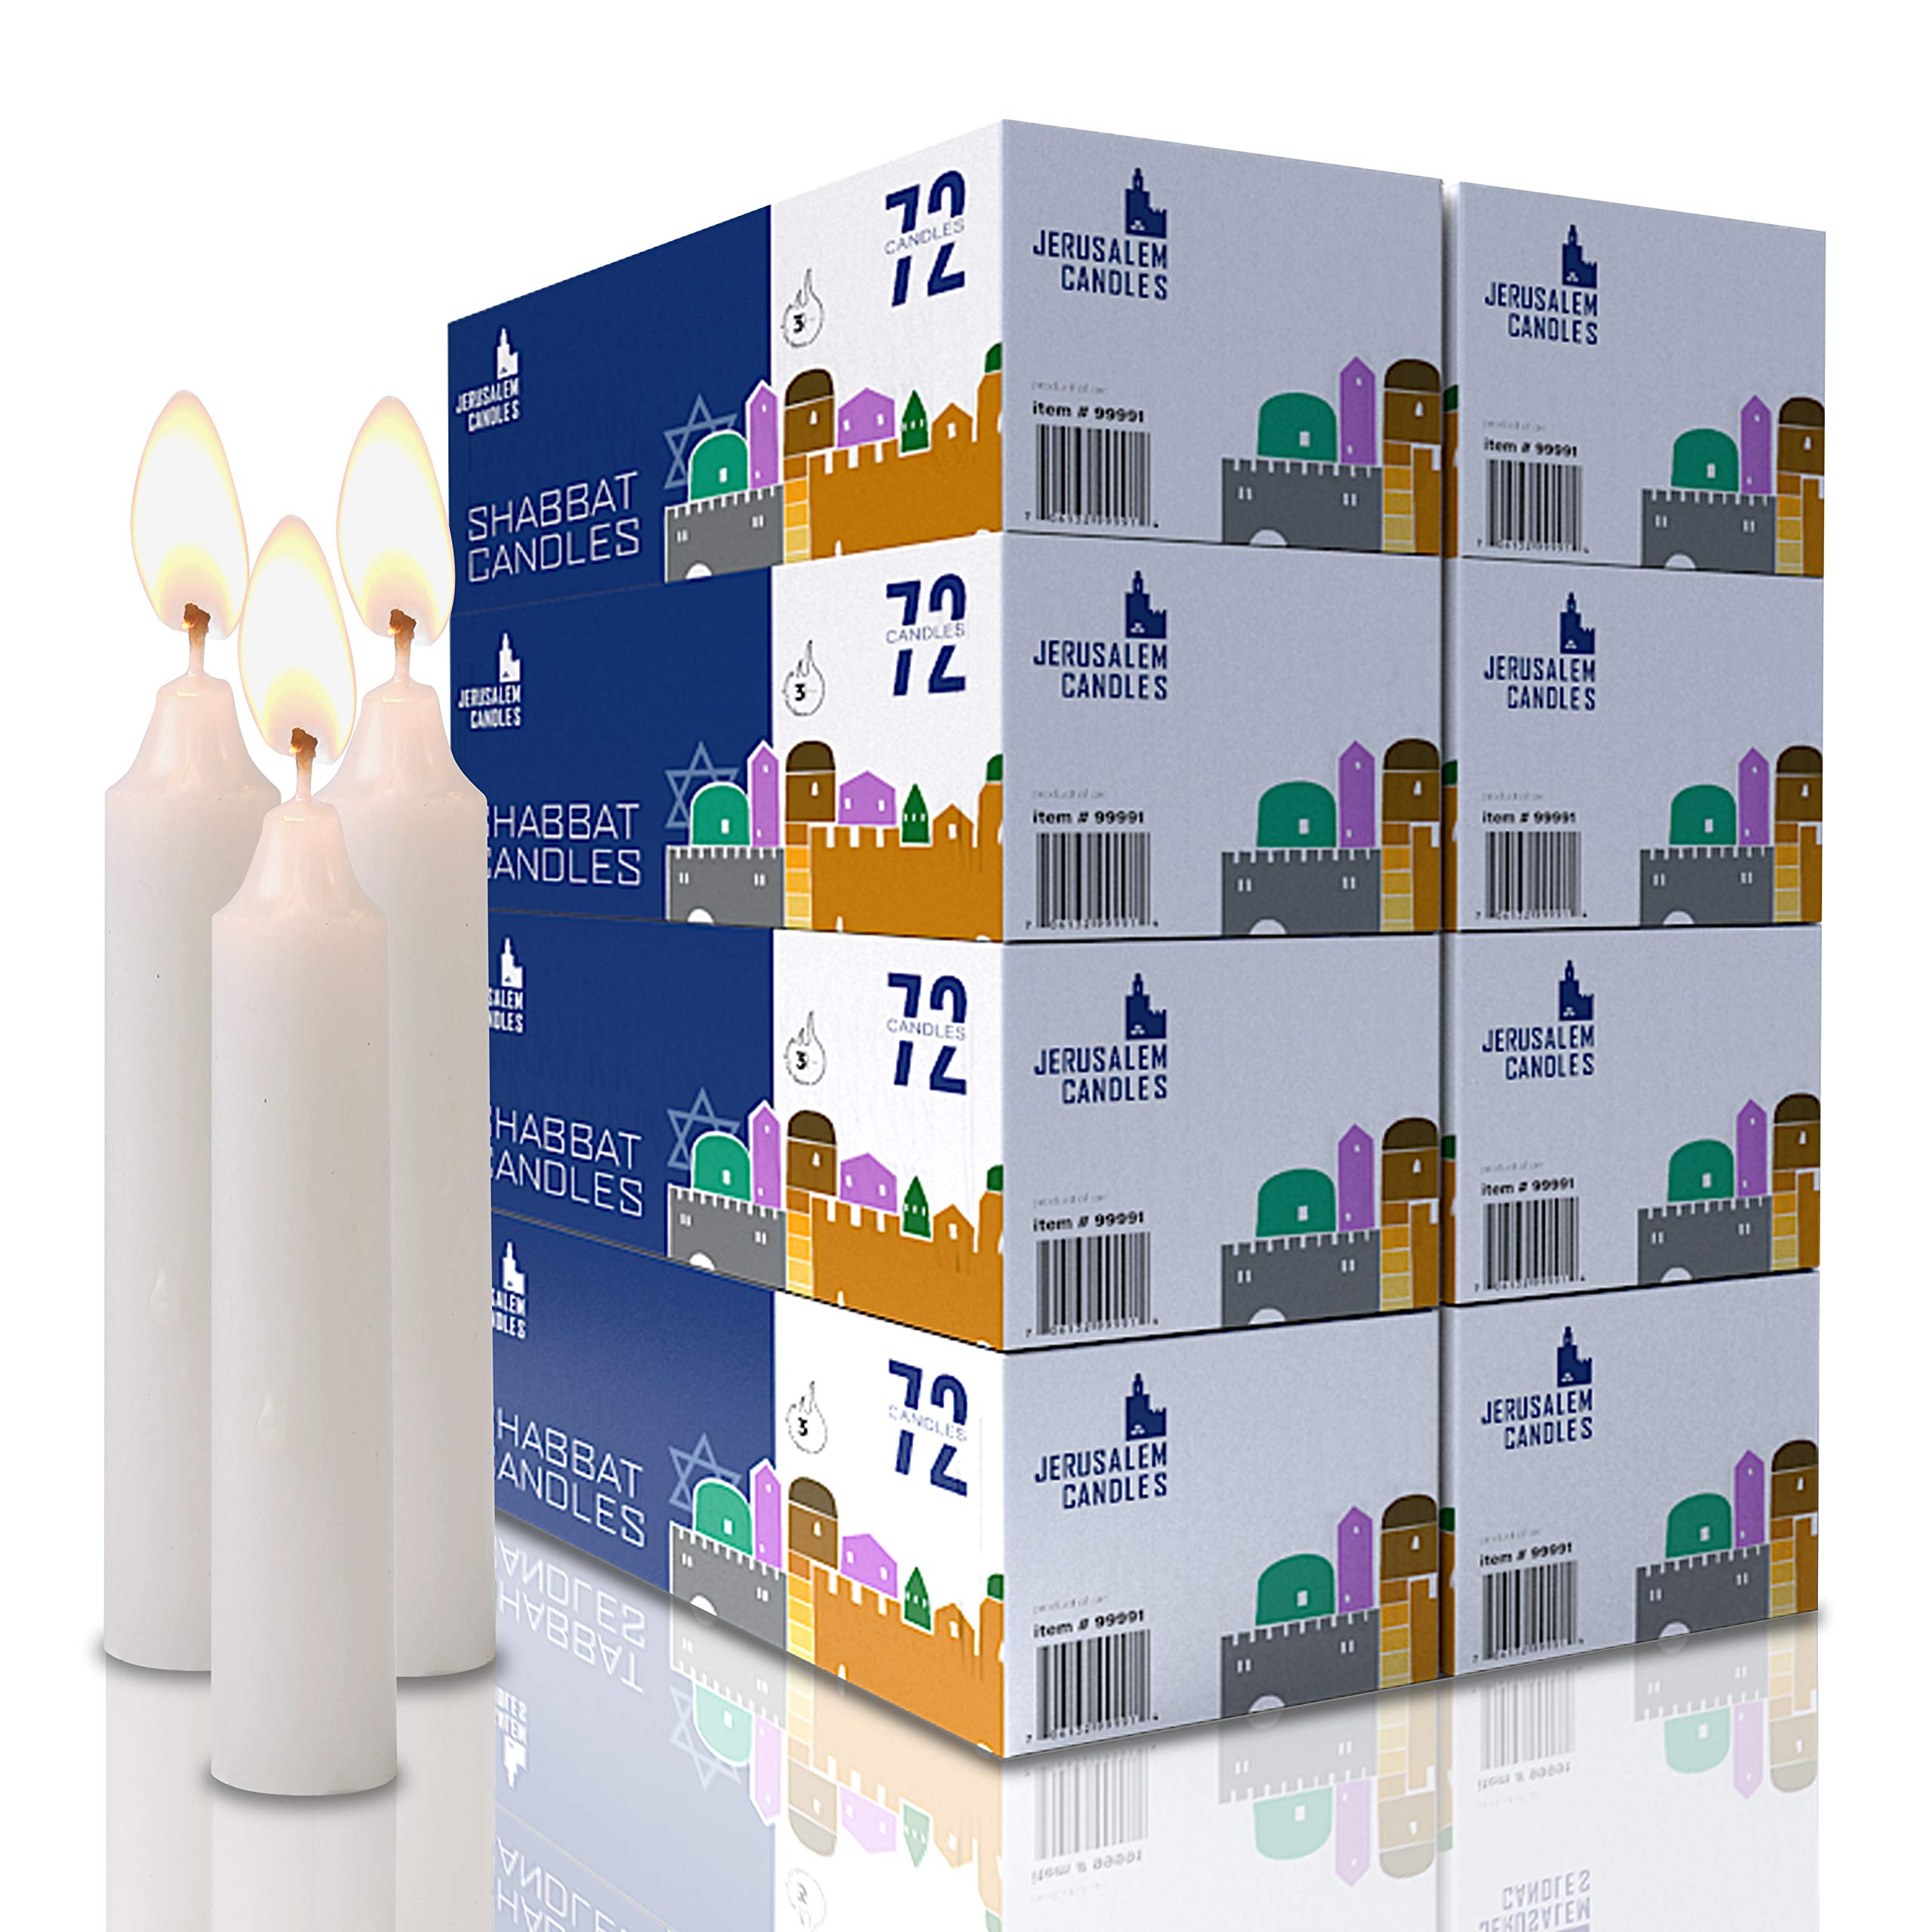 Shabbat Candles - Traditional Shabbos Candles - 3 Hour - 8-Pack x 72 Count, (576 Candles)